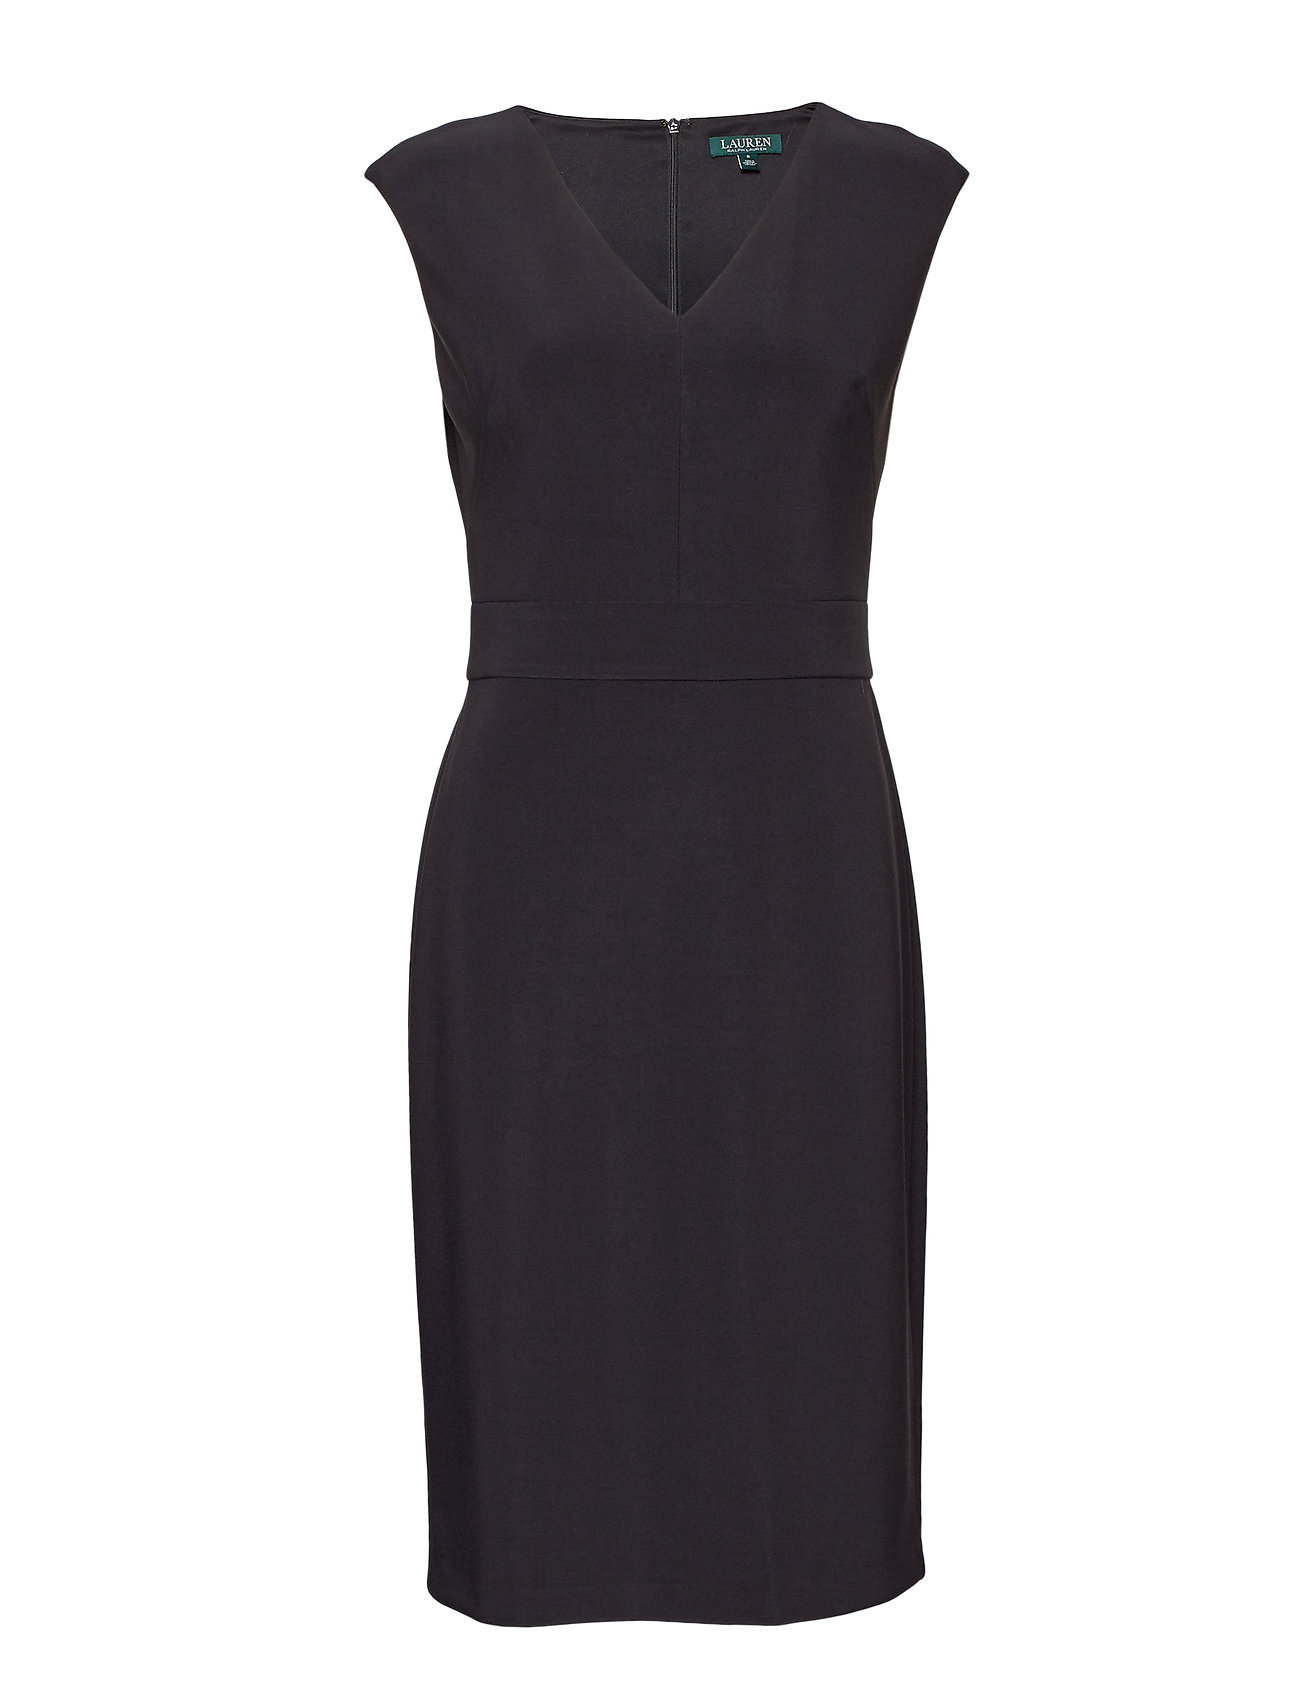 Lauren Ralph Lauren Crepe Cap-Sleeve Dress - BLACK